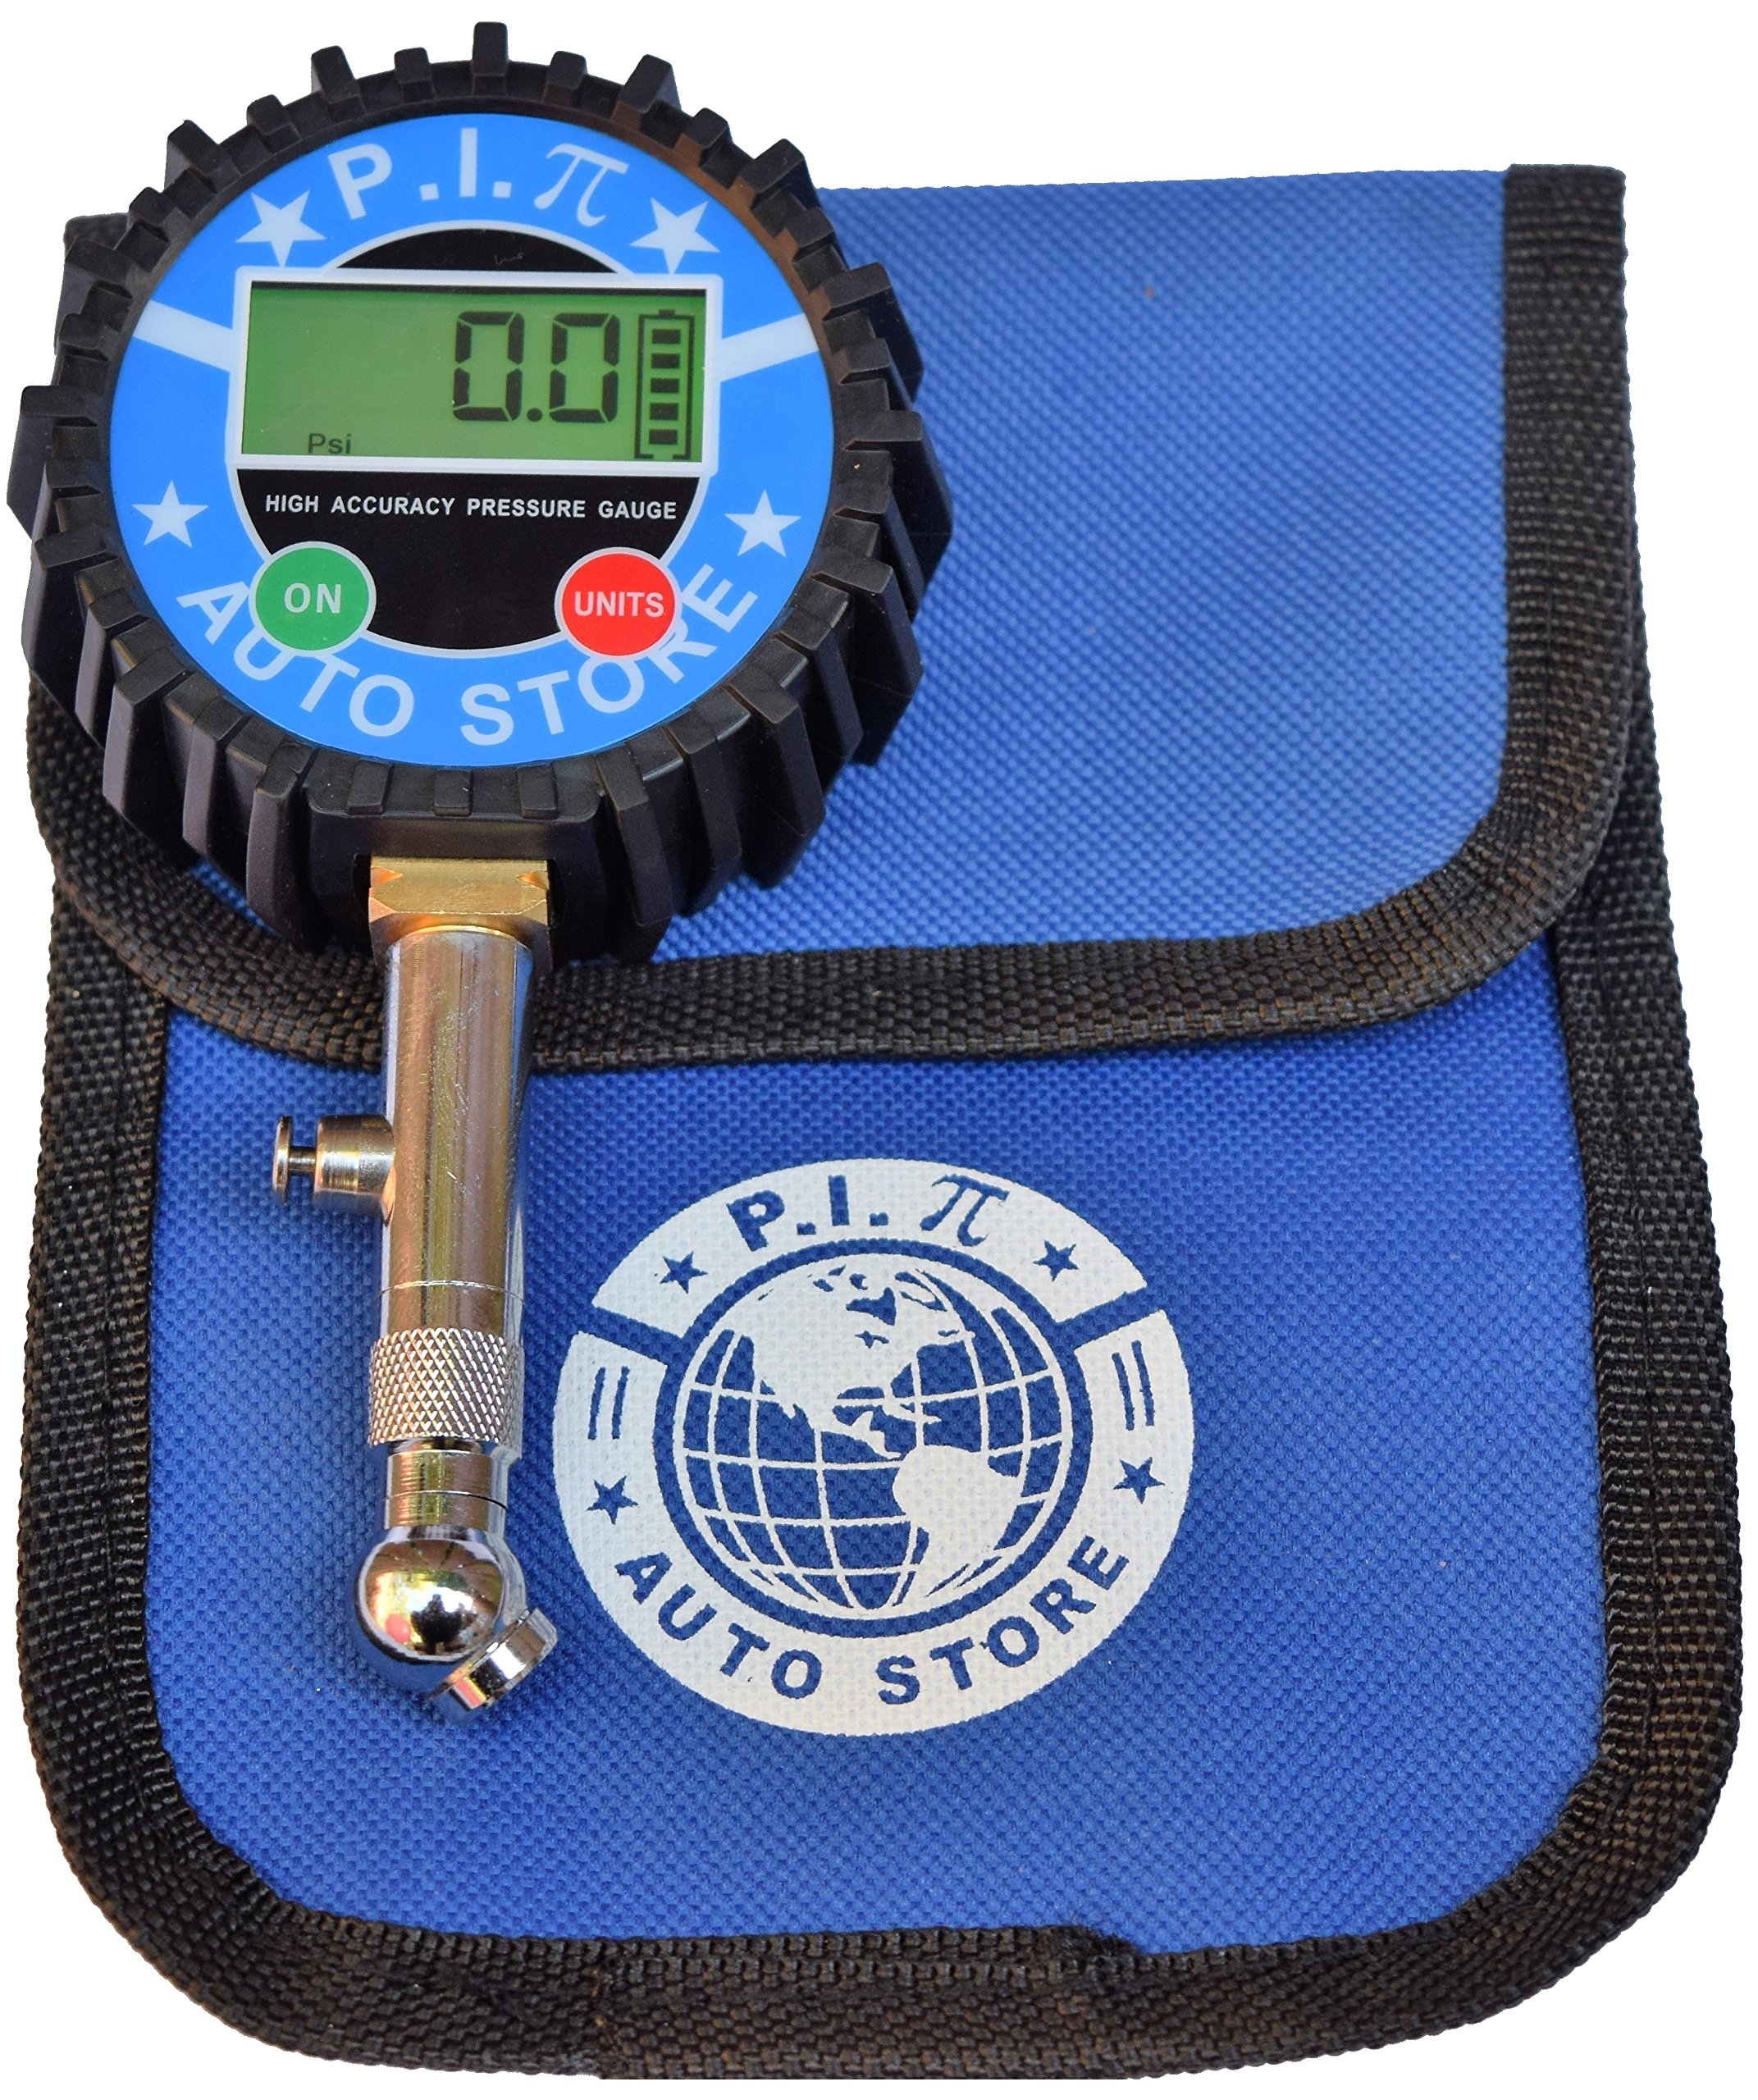 P.I. AUTO STORE Premium Digital Tire Pressure Gauge. 200Psi. Heavy Duty, highly accurate. With storage pouch. Best for Car, Truck, ATV, RV, Motorcycle & SUV.…